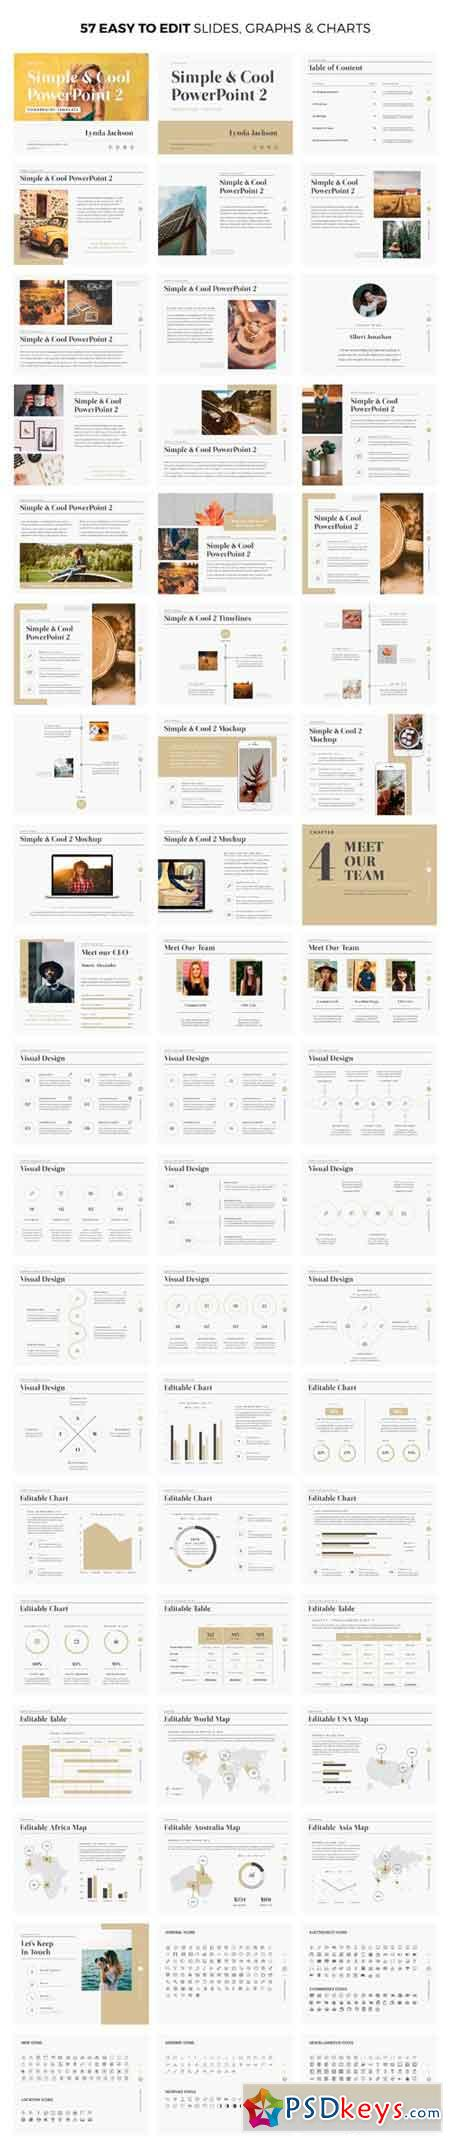 simple & cool powerpoint template 2 1582977 » free download, Presentation templates